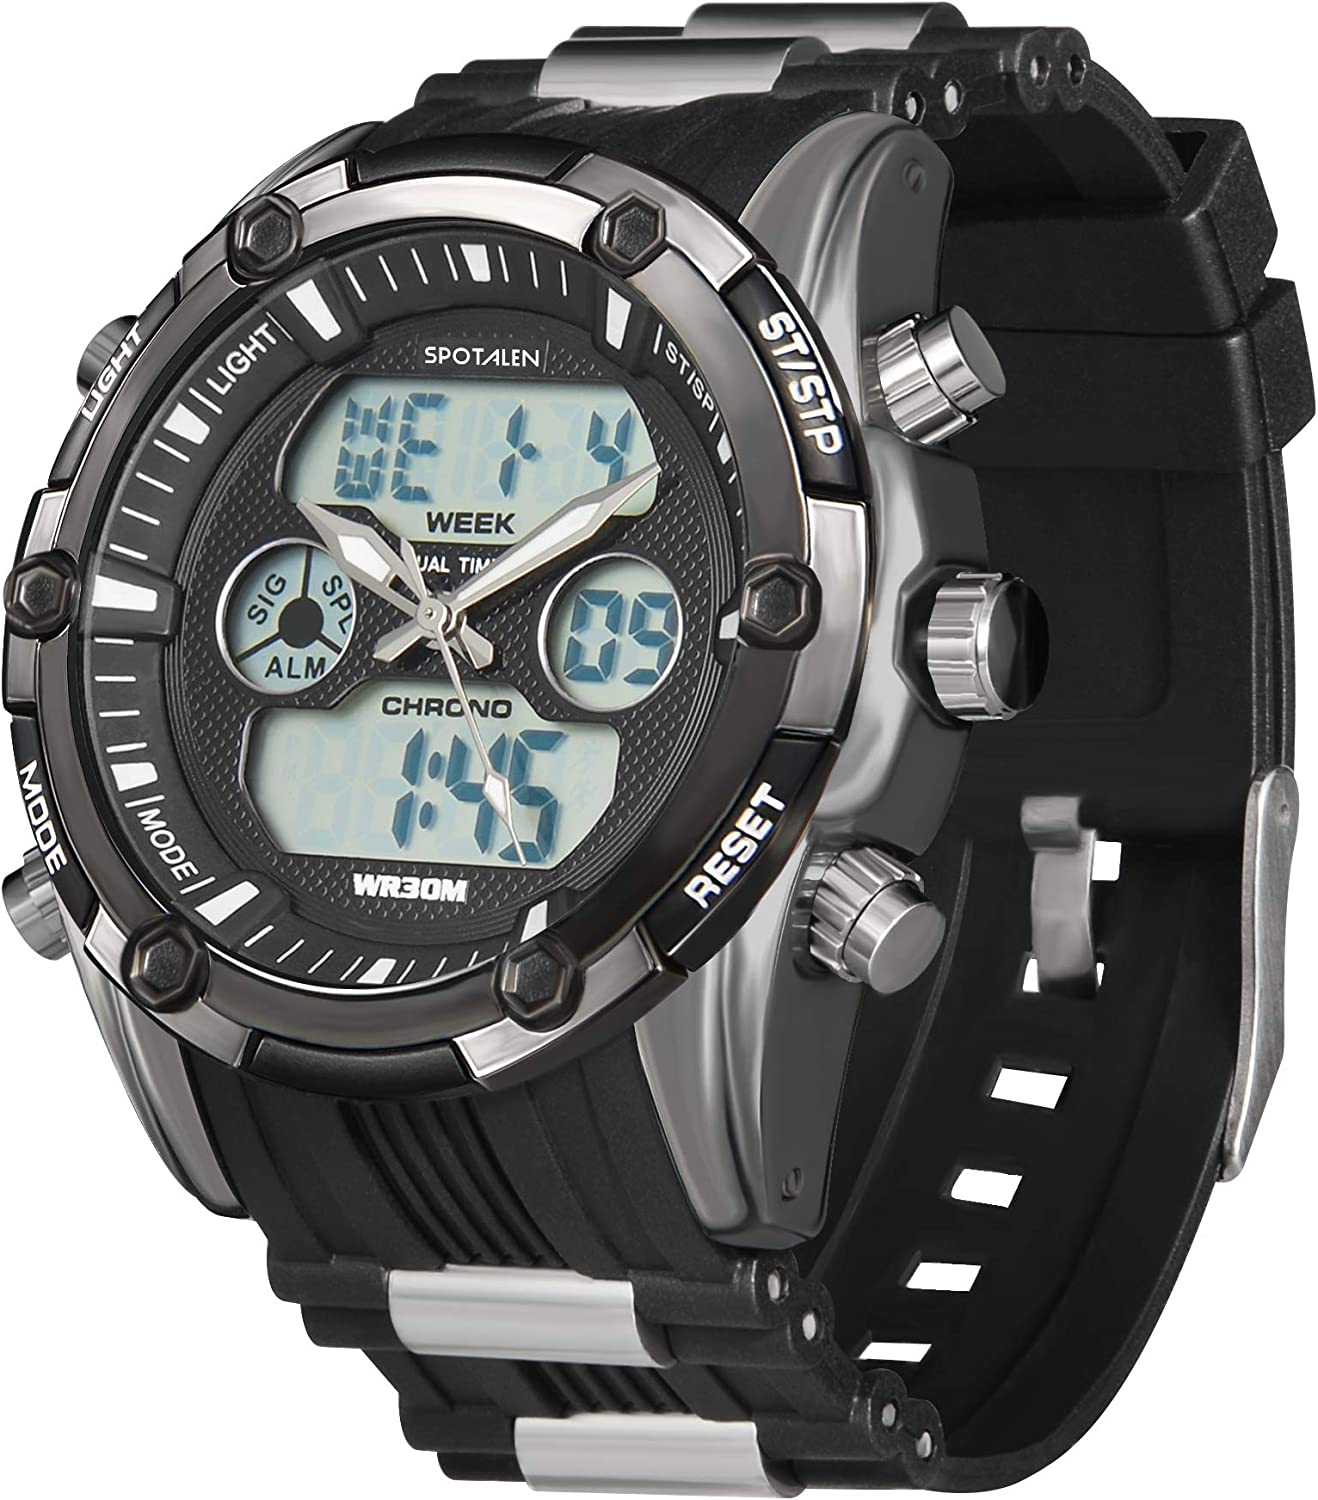 Men Watch Sport Analog Digital Casual Military Watches for Man Chronograph Alarm Backlight with Silicone Band